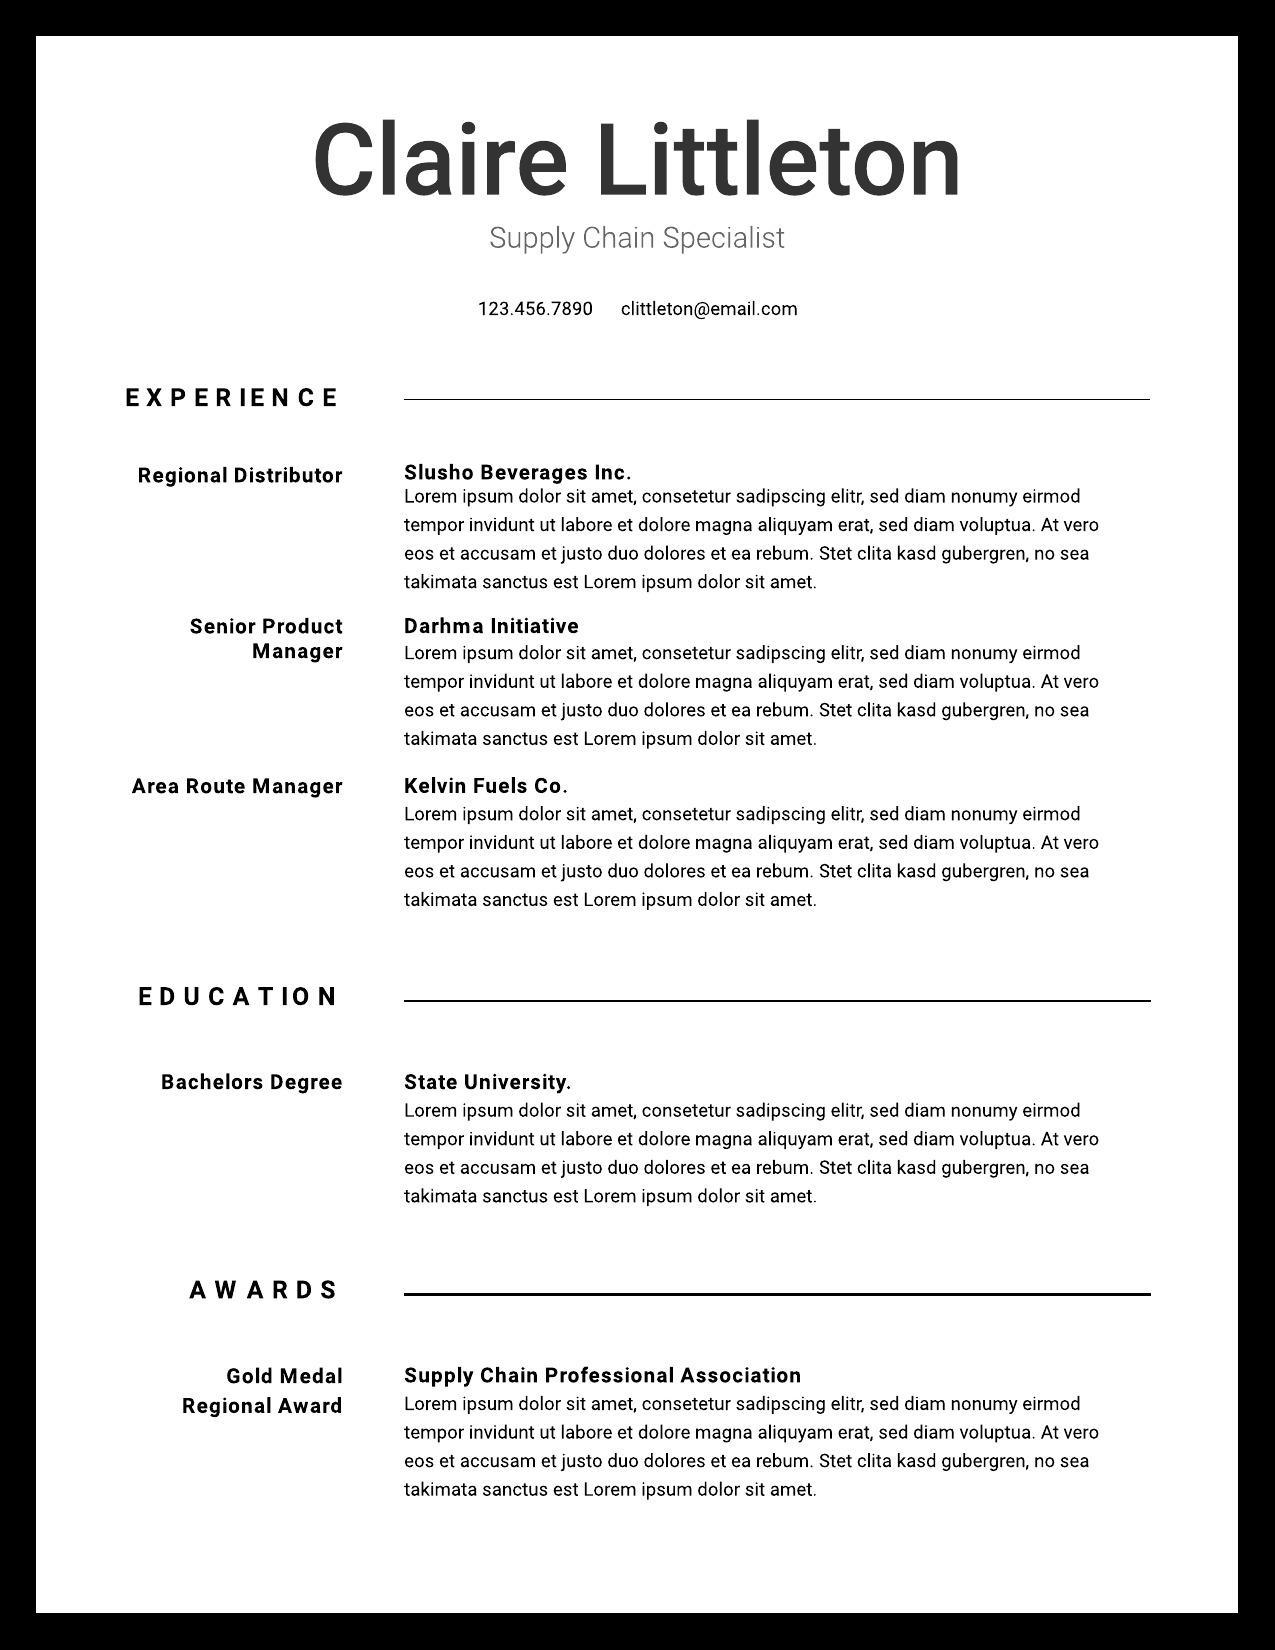 resume examples writing tips for lucidpress creating image09 warehouse worker skills Resume Tips For Creating A Resume